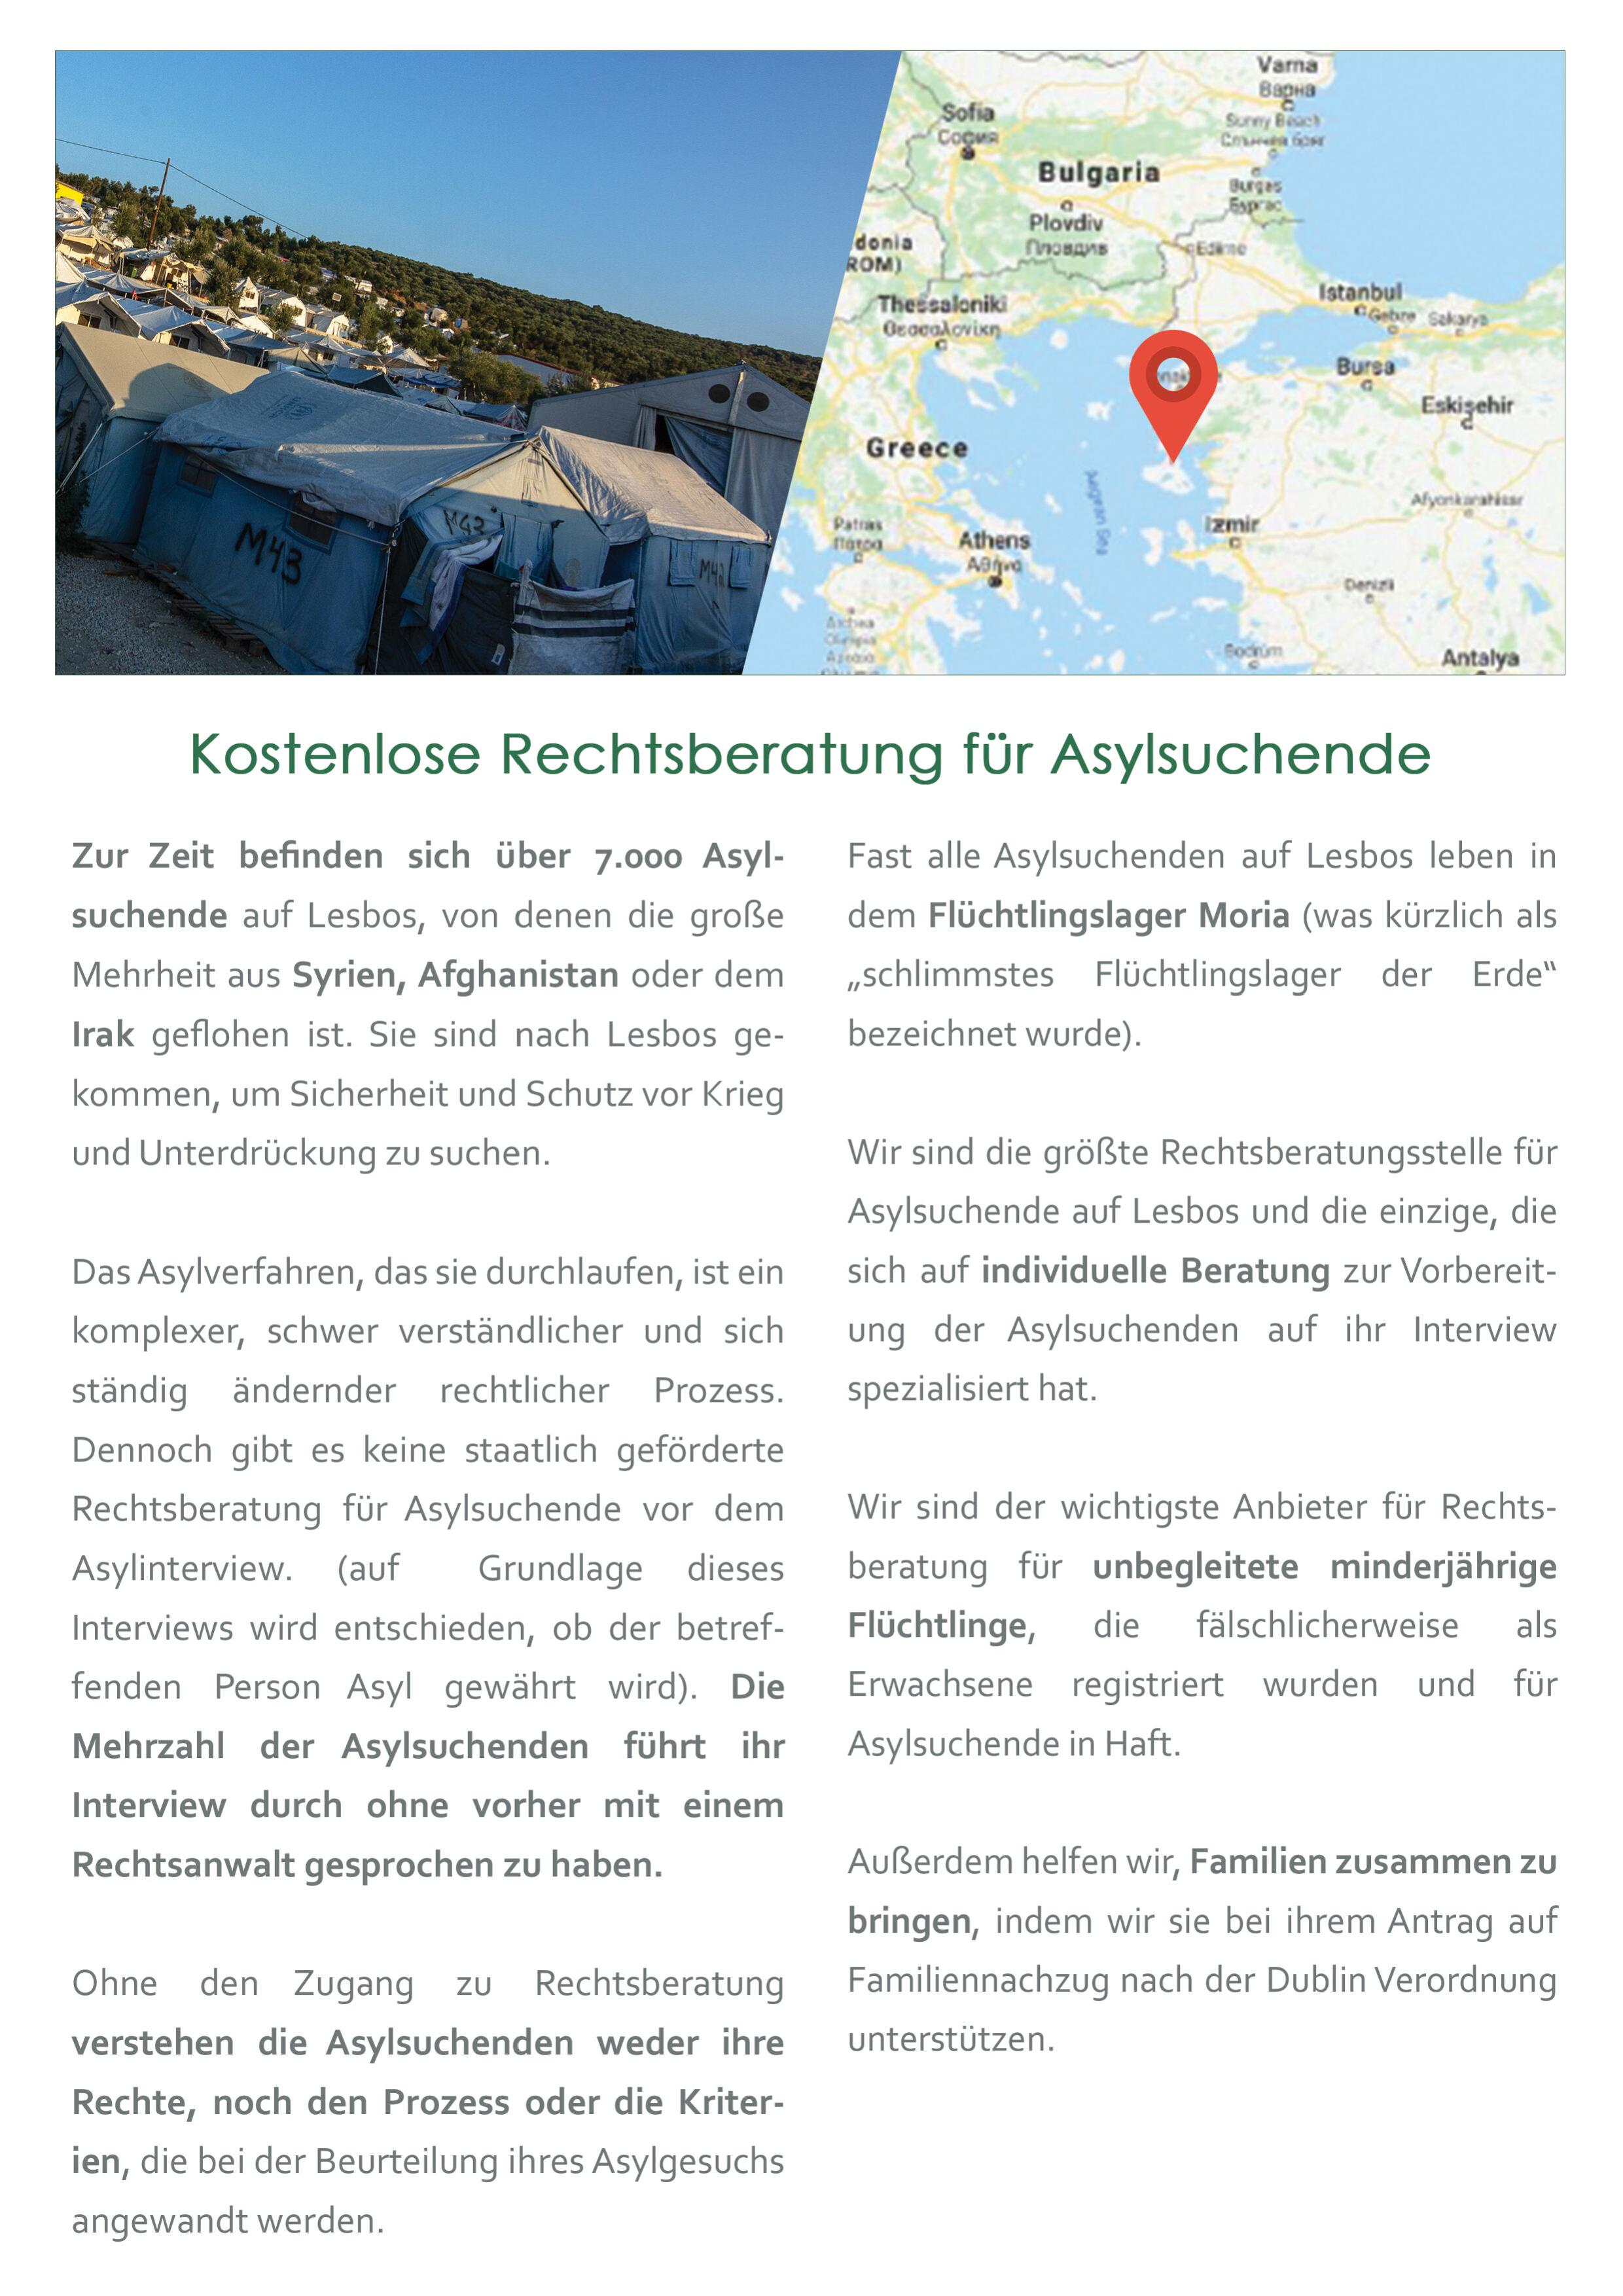 European Lawyers in Lesvos - Infographic_DE-page-002.jpg